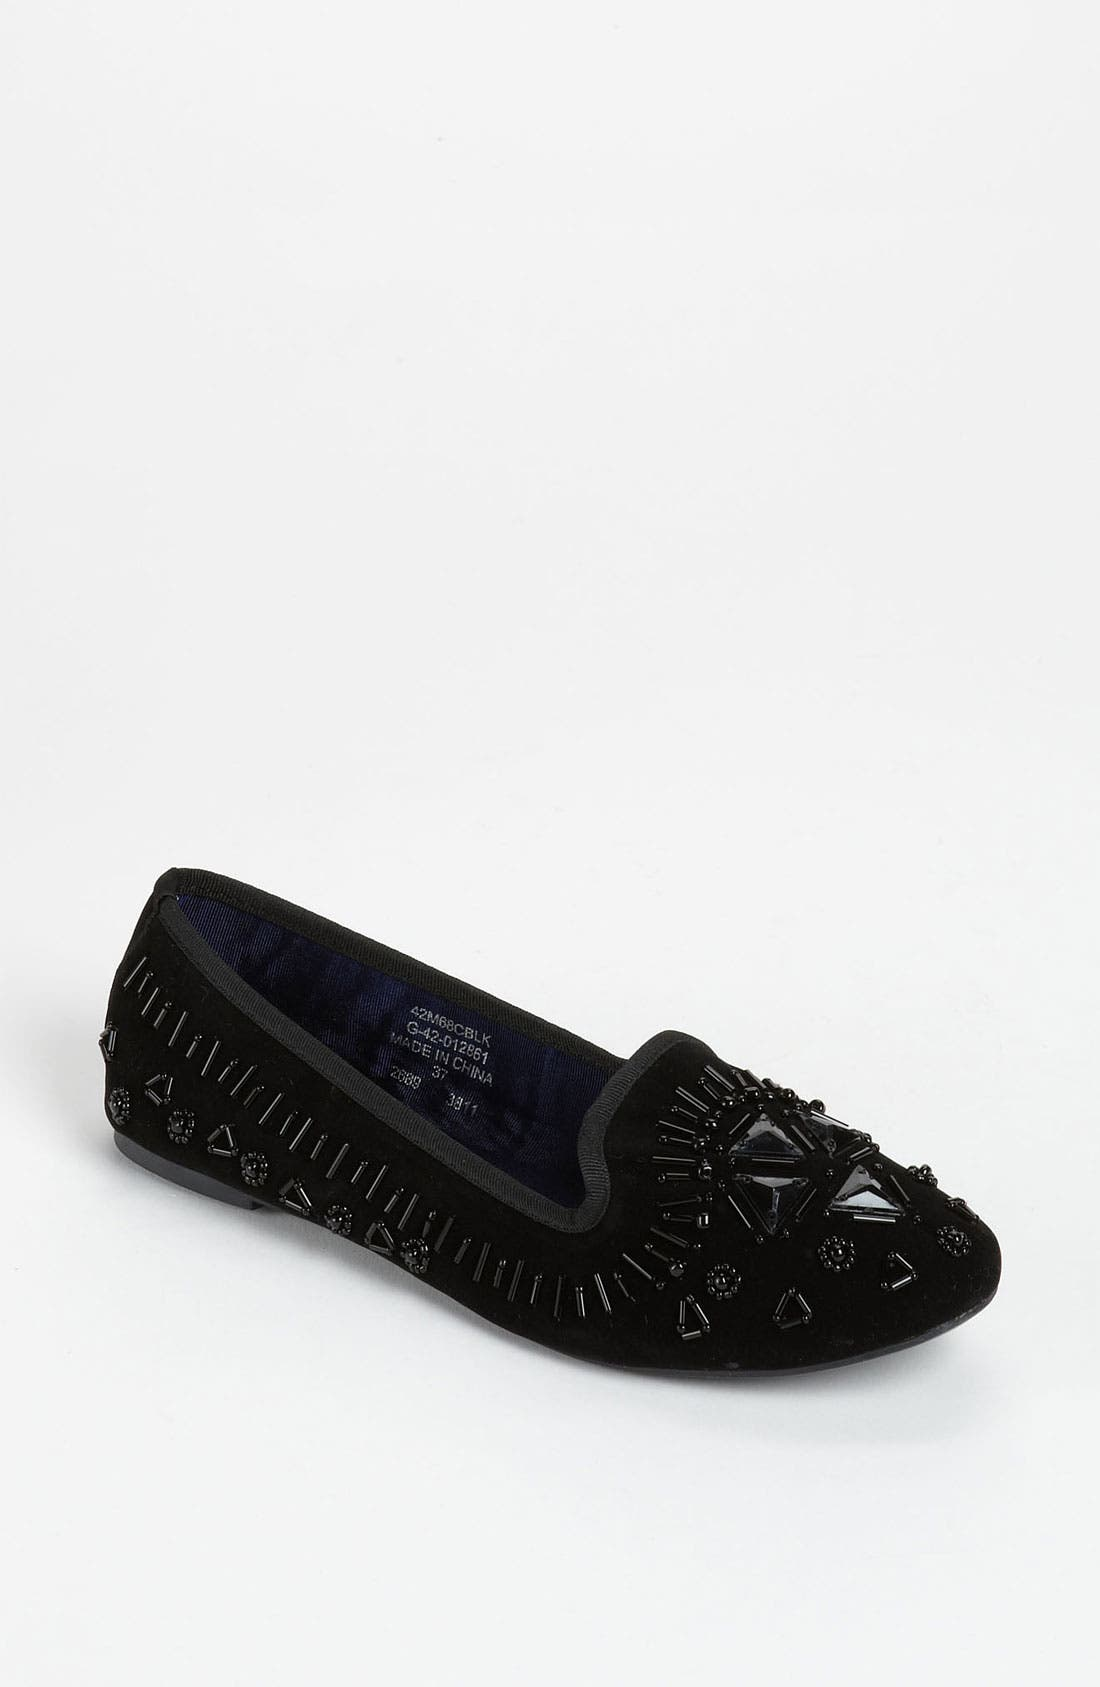 Alternate Image 1 Selected - Topshop 'Mystery' Slipper